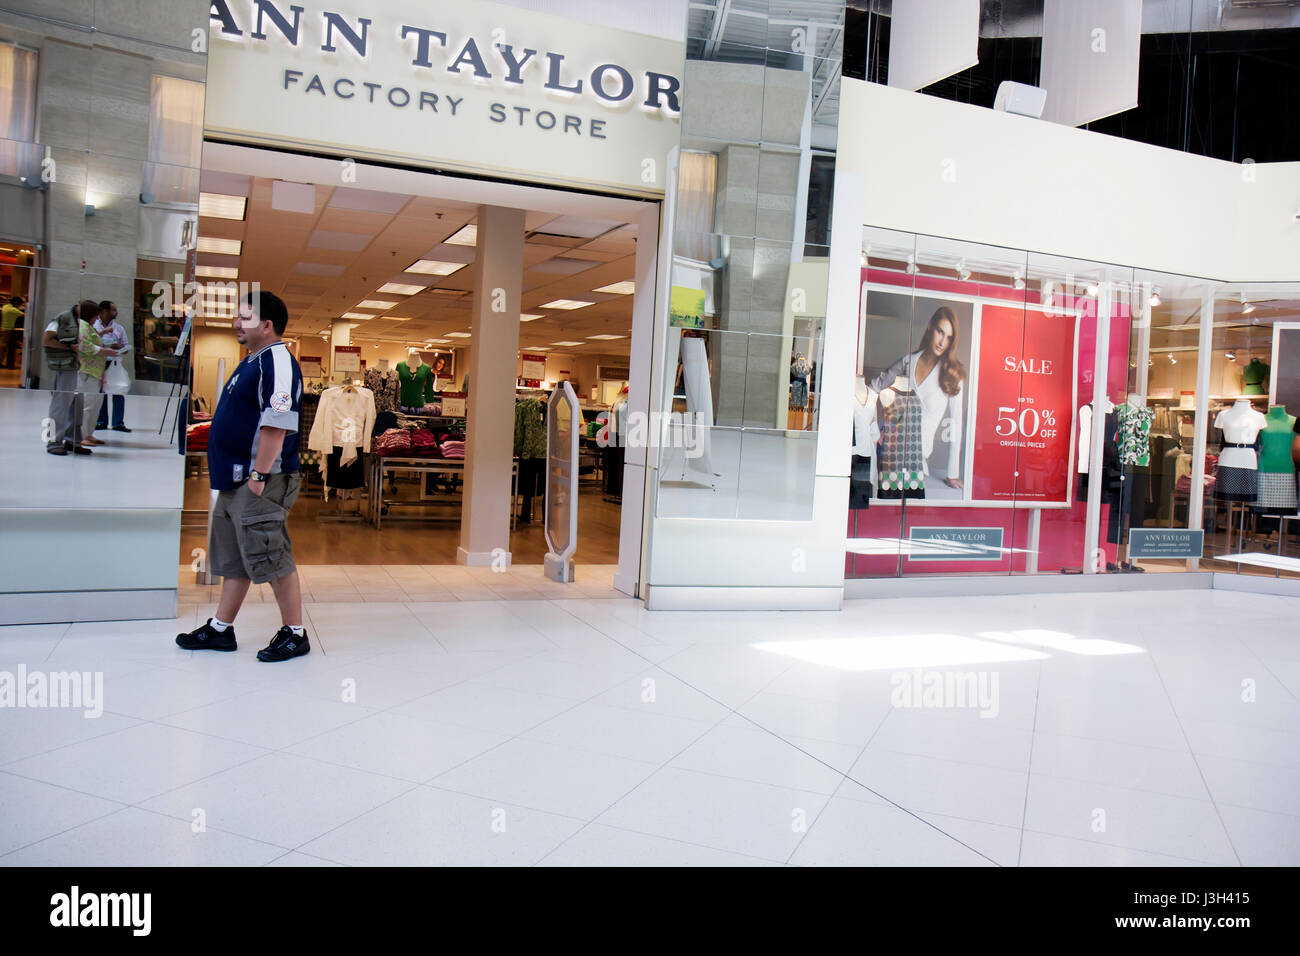 Miami Florida Dolphin Mall Ann Taylor Factory Store Outlet Store